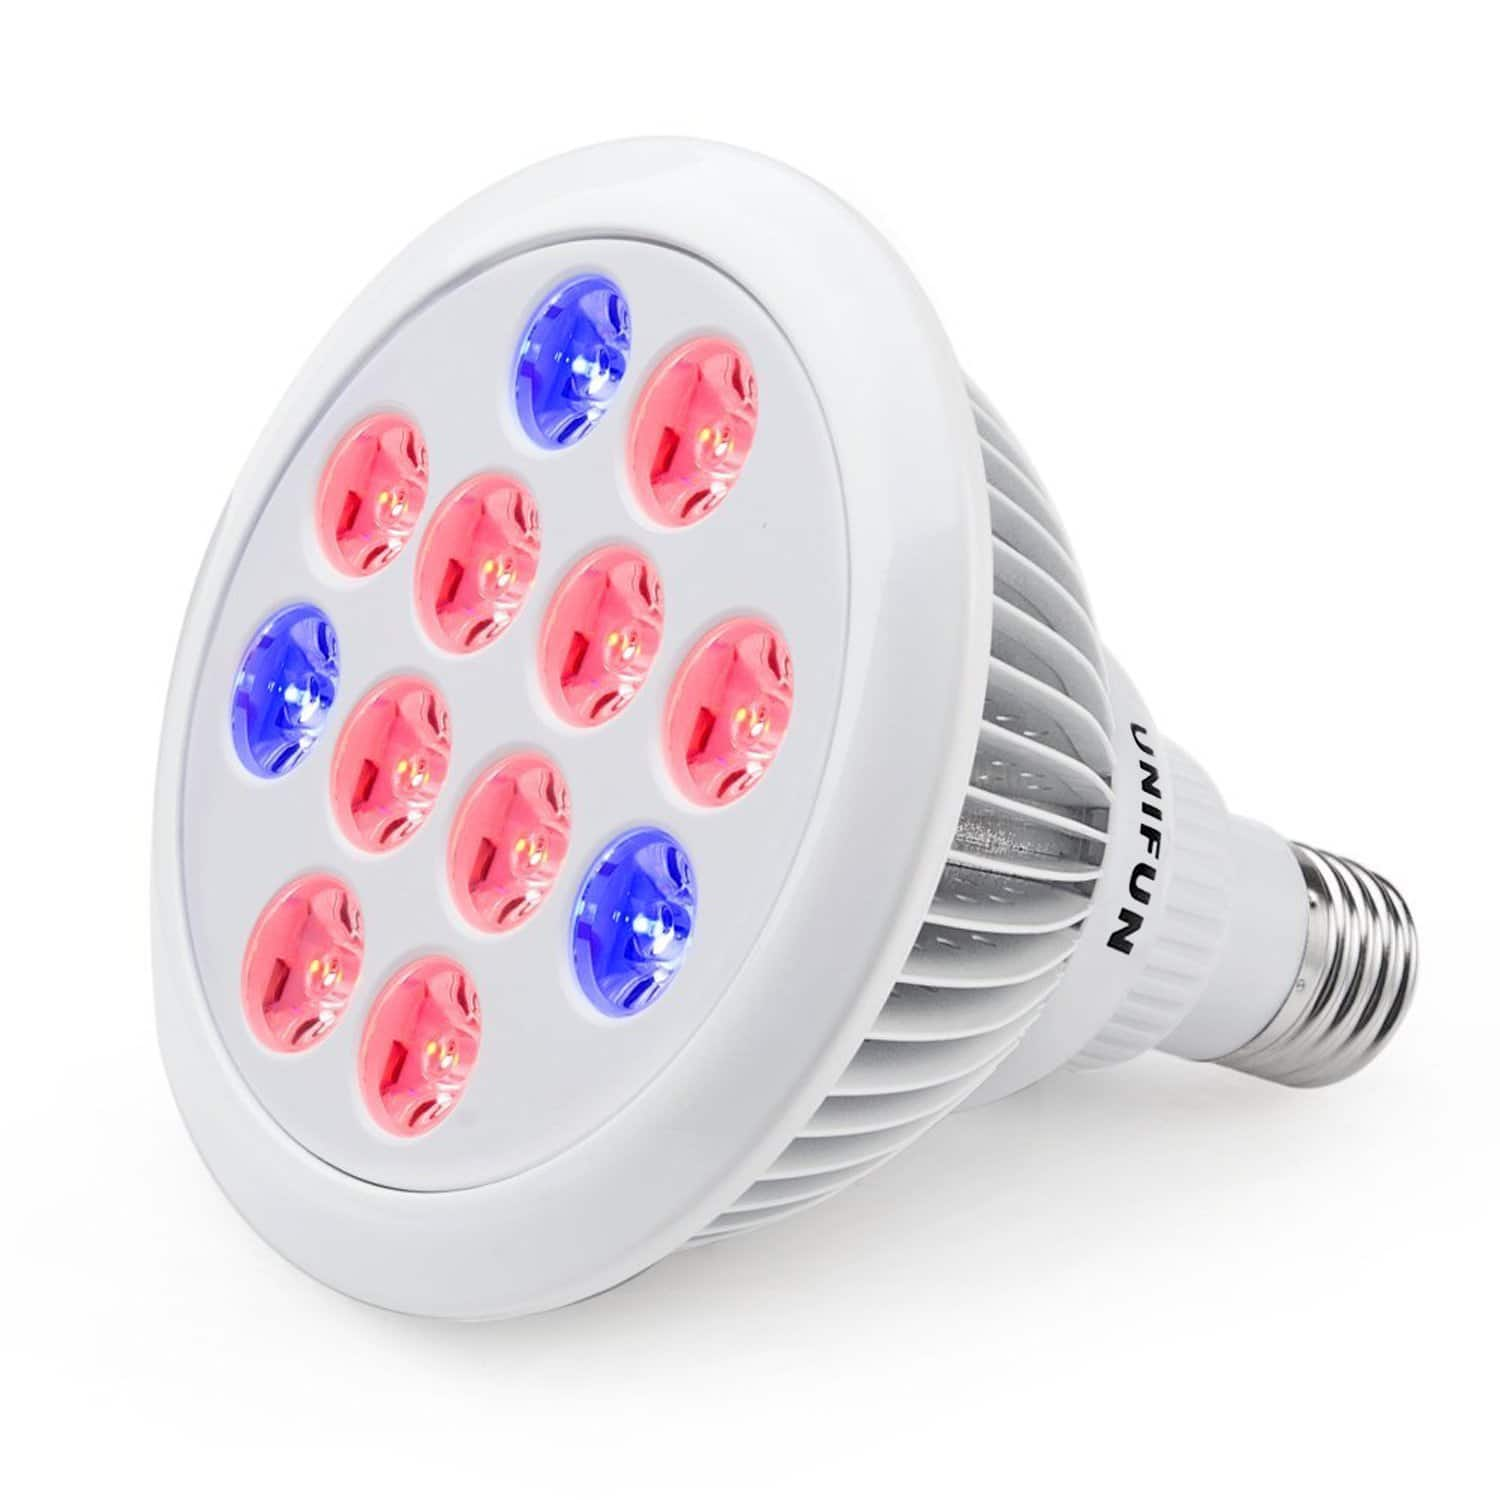 UNIFUN 24W LED Plant Grow Light $14.99 AC @ Amazon